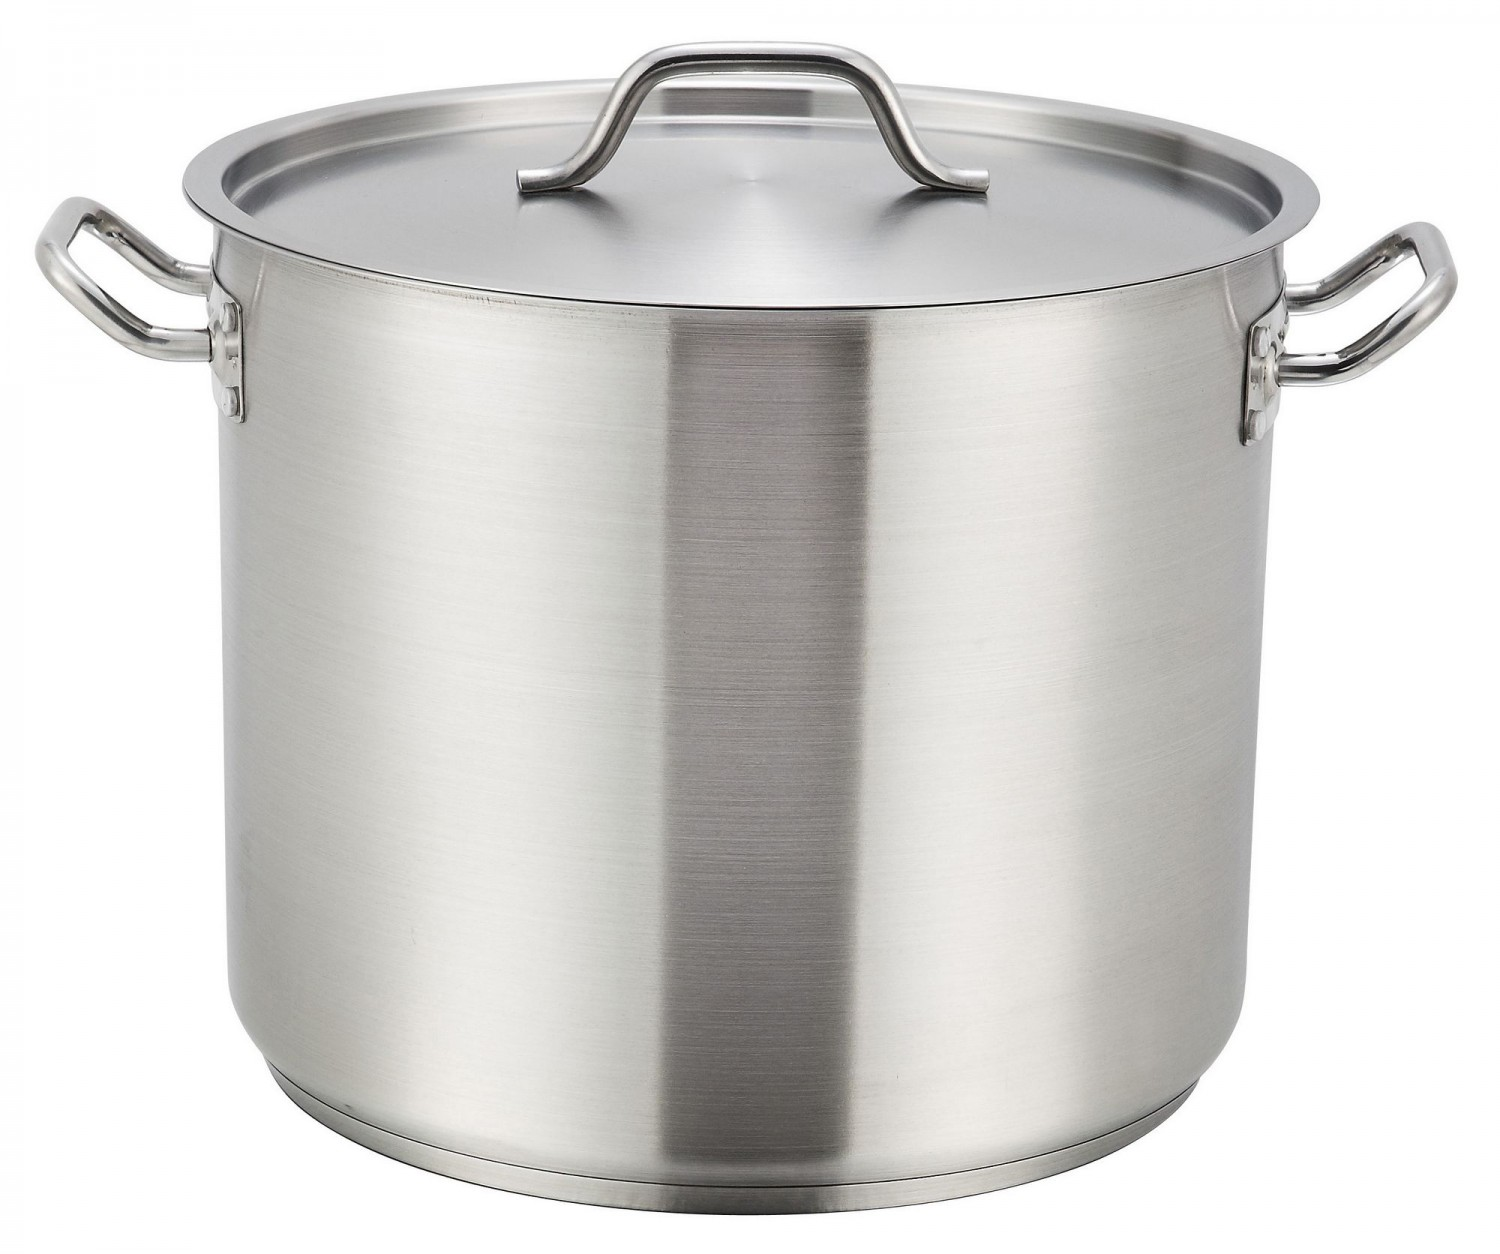 Winco SST-12 Stainless Induction Stock Pot with Cover 12 Qt.